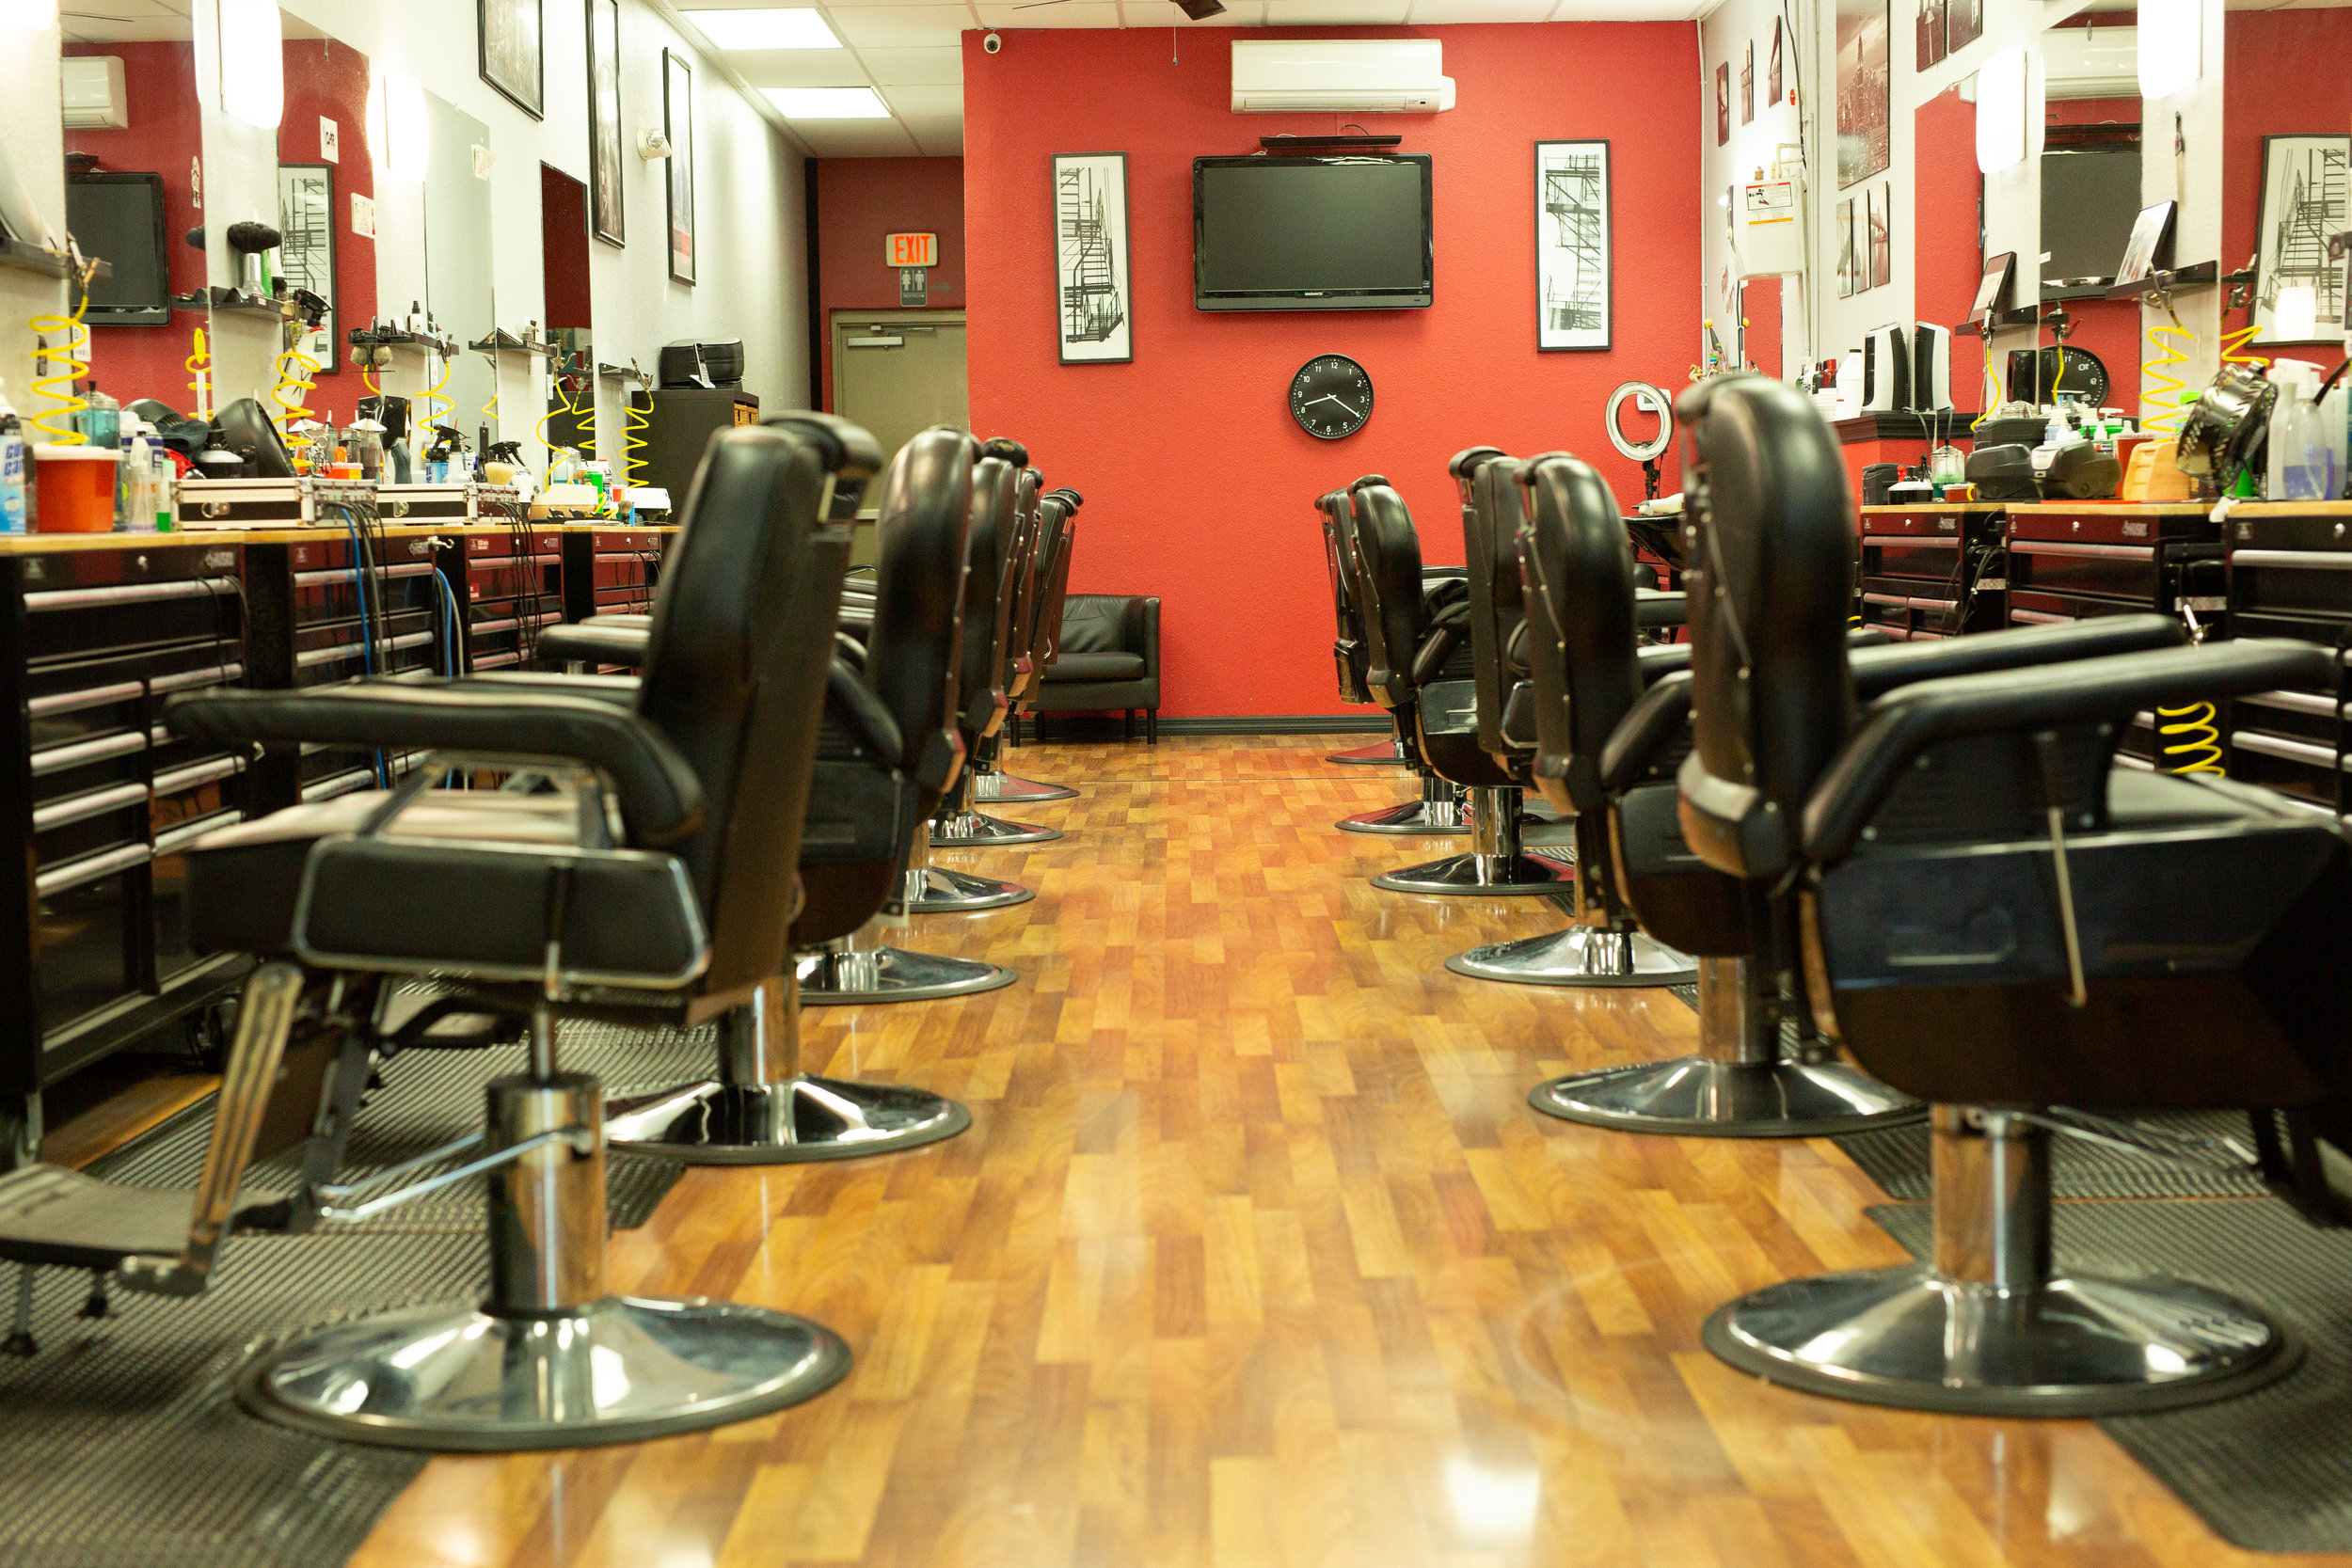 - At Clippers Barber Shop we feel 100% confident that there is not a single haircut that our team of experienced barbers can't do. We have our pulse on the latest styles for men and boys, and can also deliver on more old school haircuts. You call the shots, we make it happen.